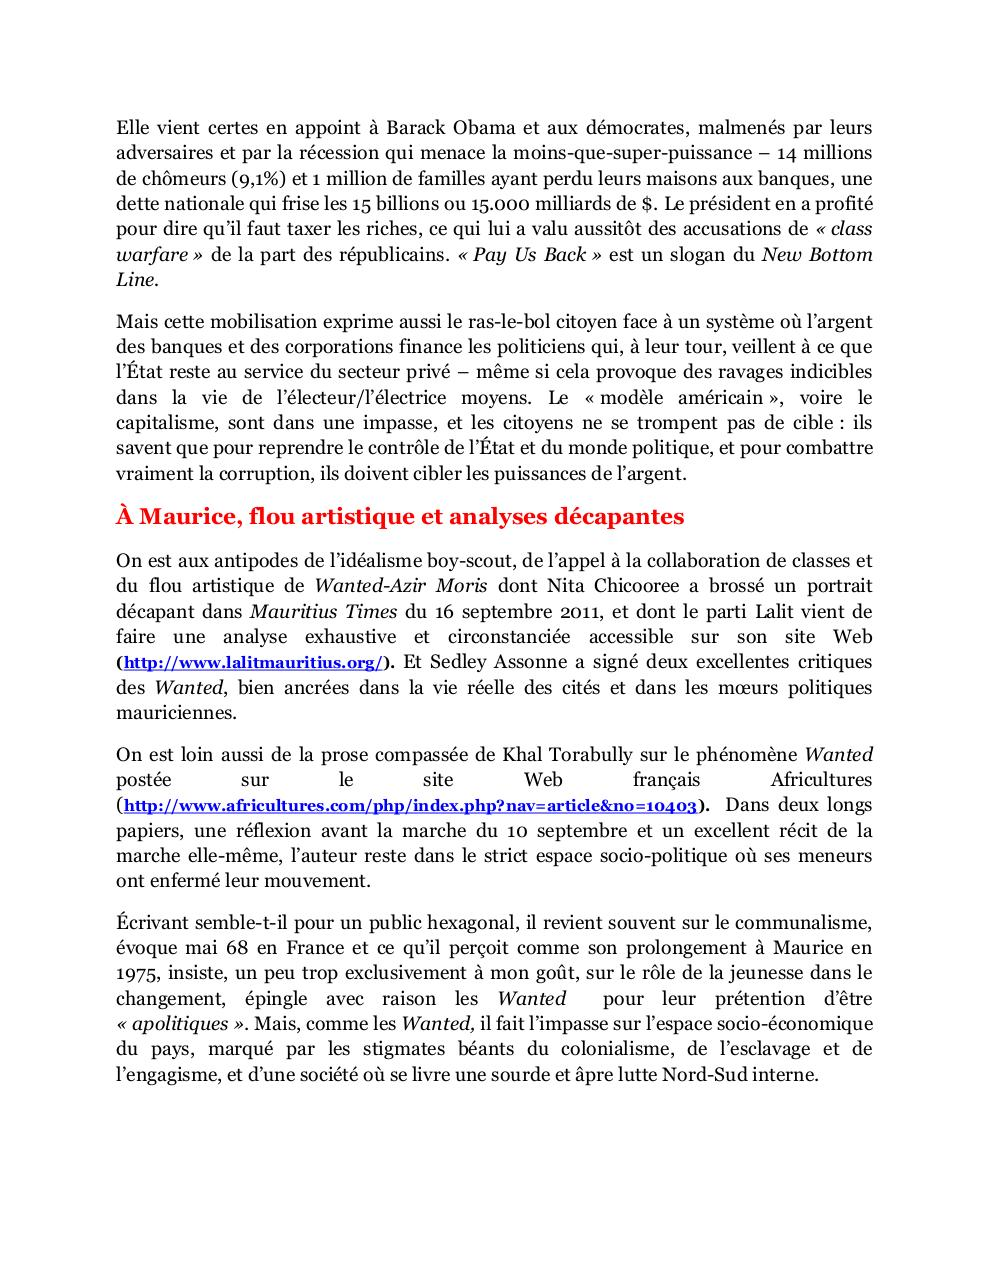 Des Wanted mauriciens au New Bottom Line etatsunien, amended MTimes-art-23092011.pdf - page 2/4